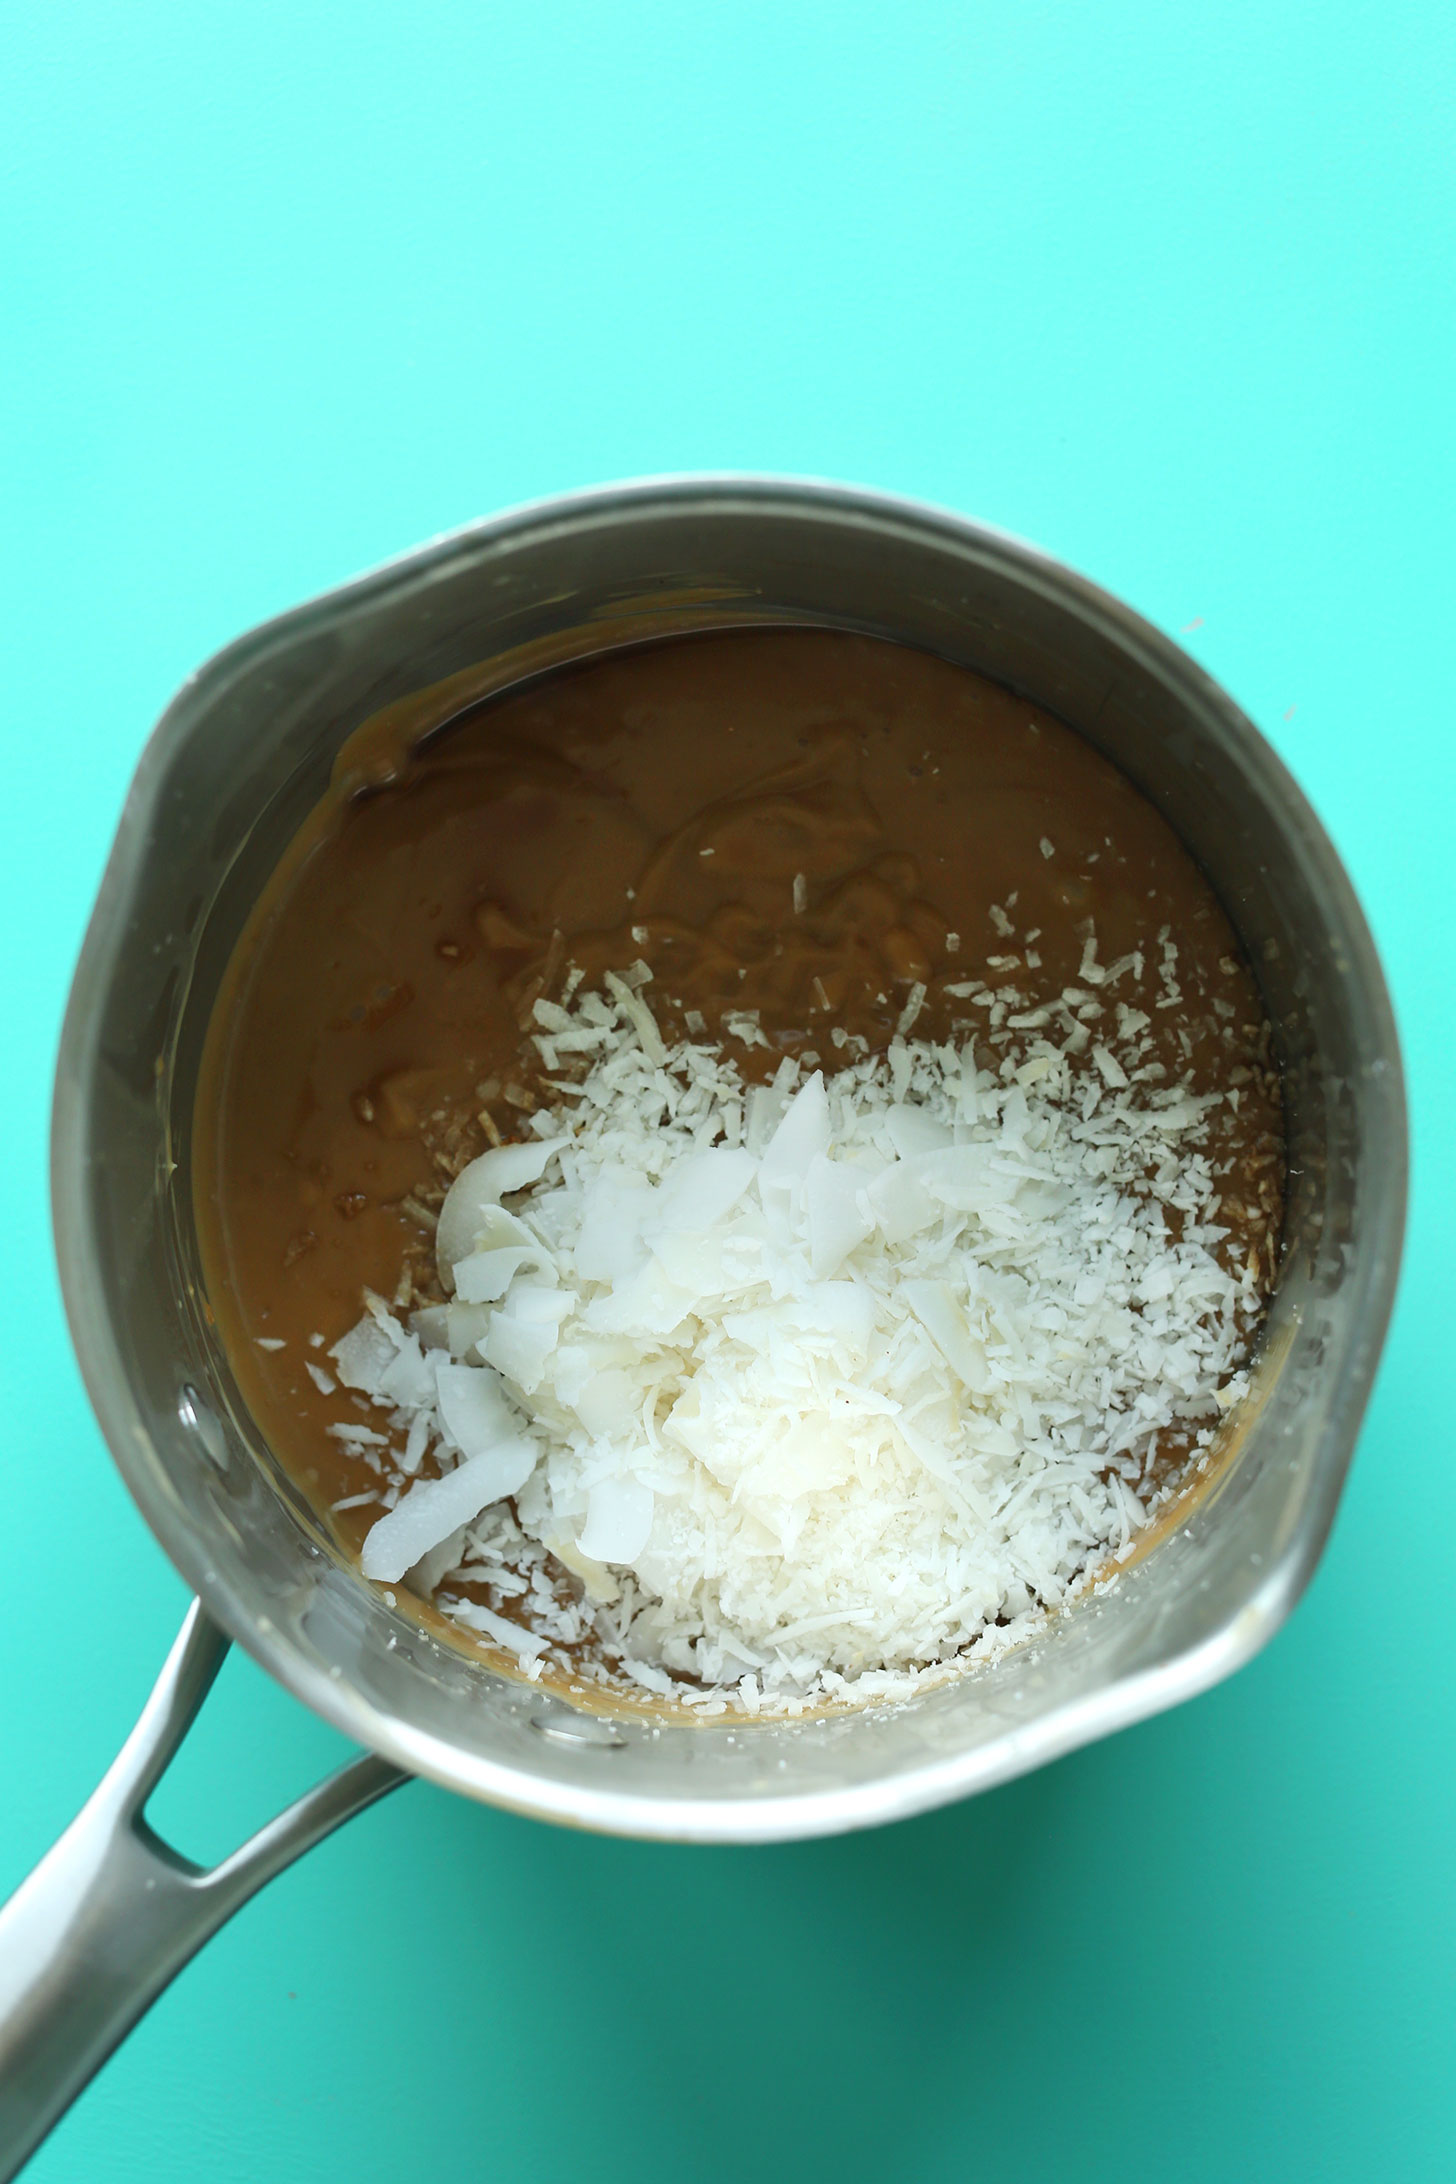 Toasting coconut in a pan for our Coconut Cream Pie recipe